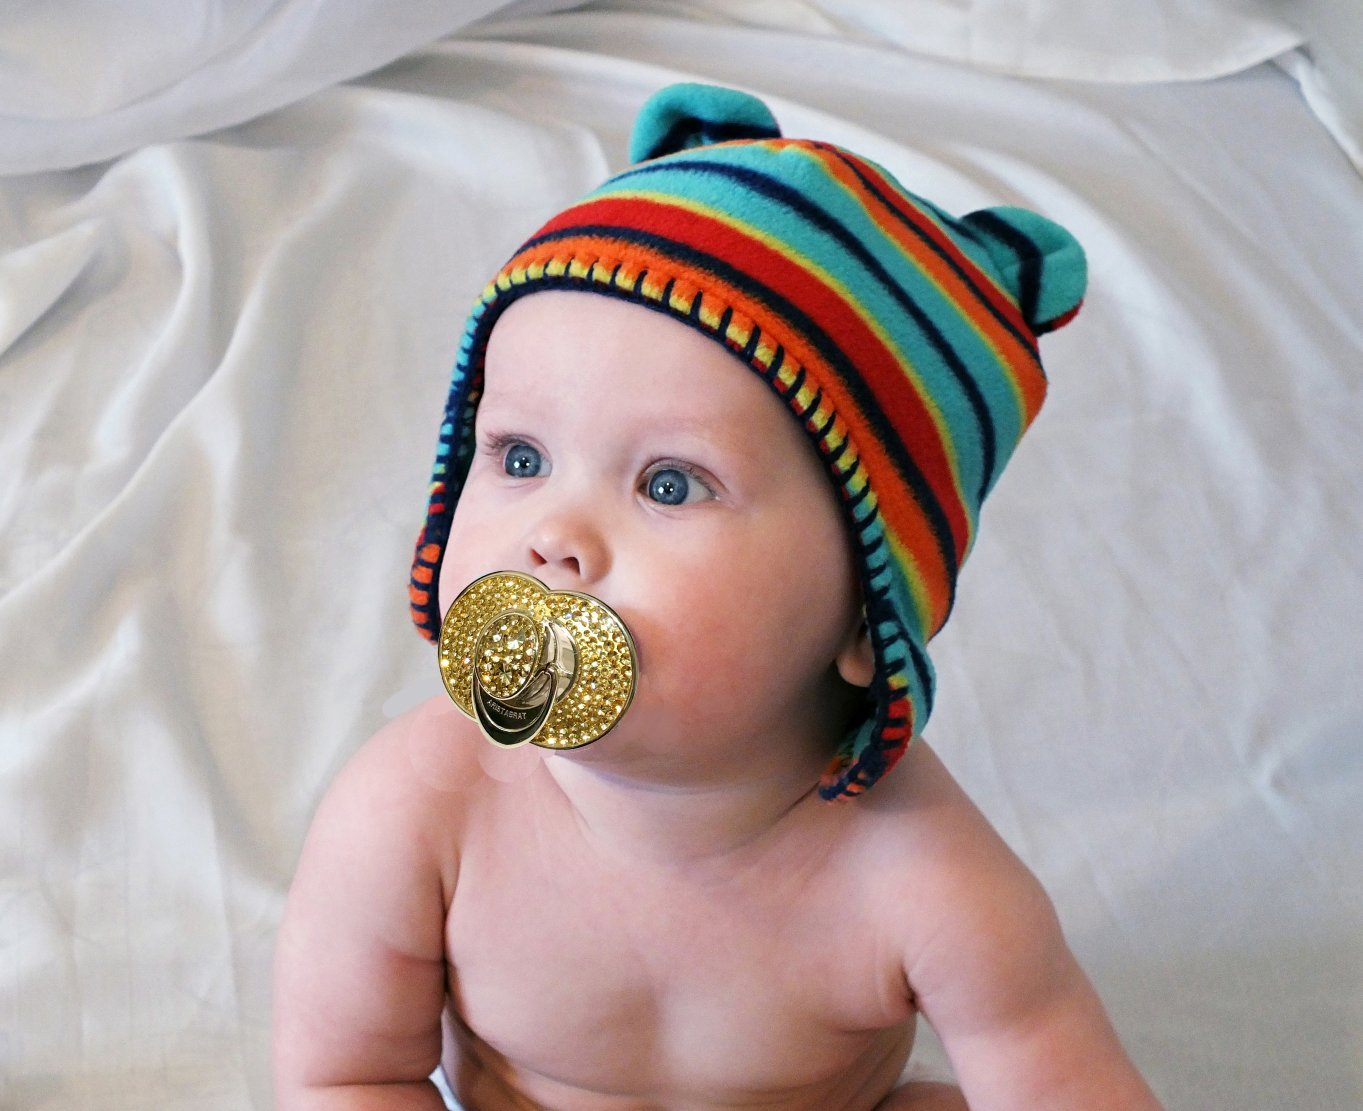 Amazon.com : Keepsake Platinum Pacifier Encrusted with Gold ...